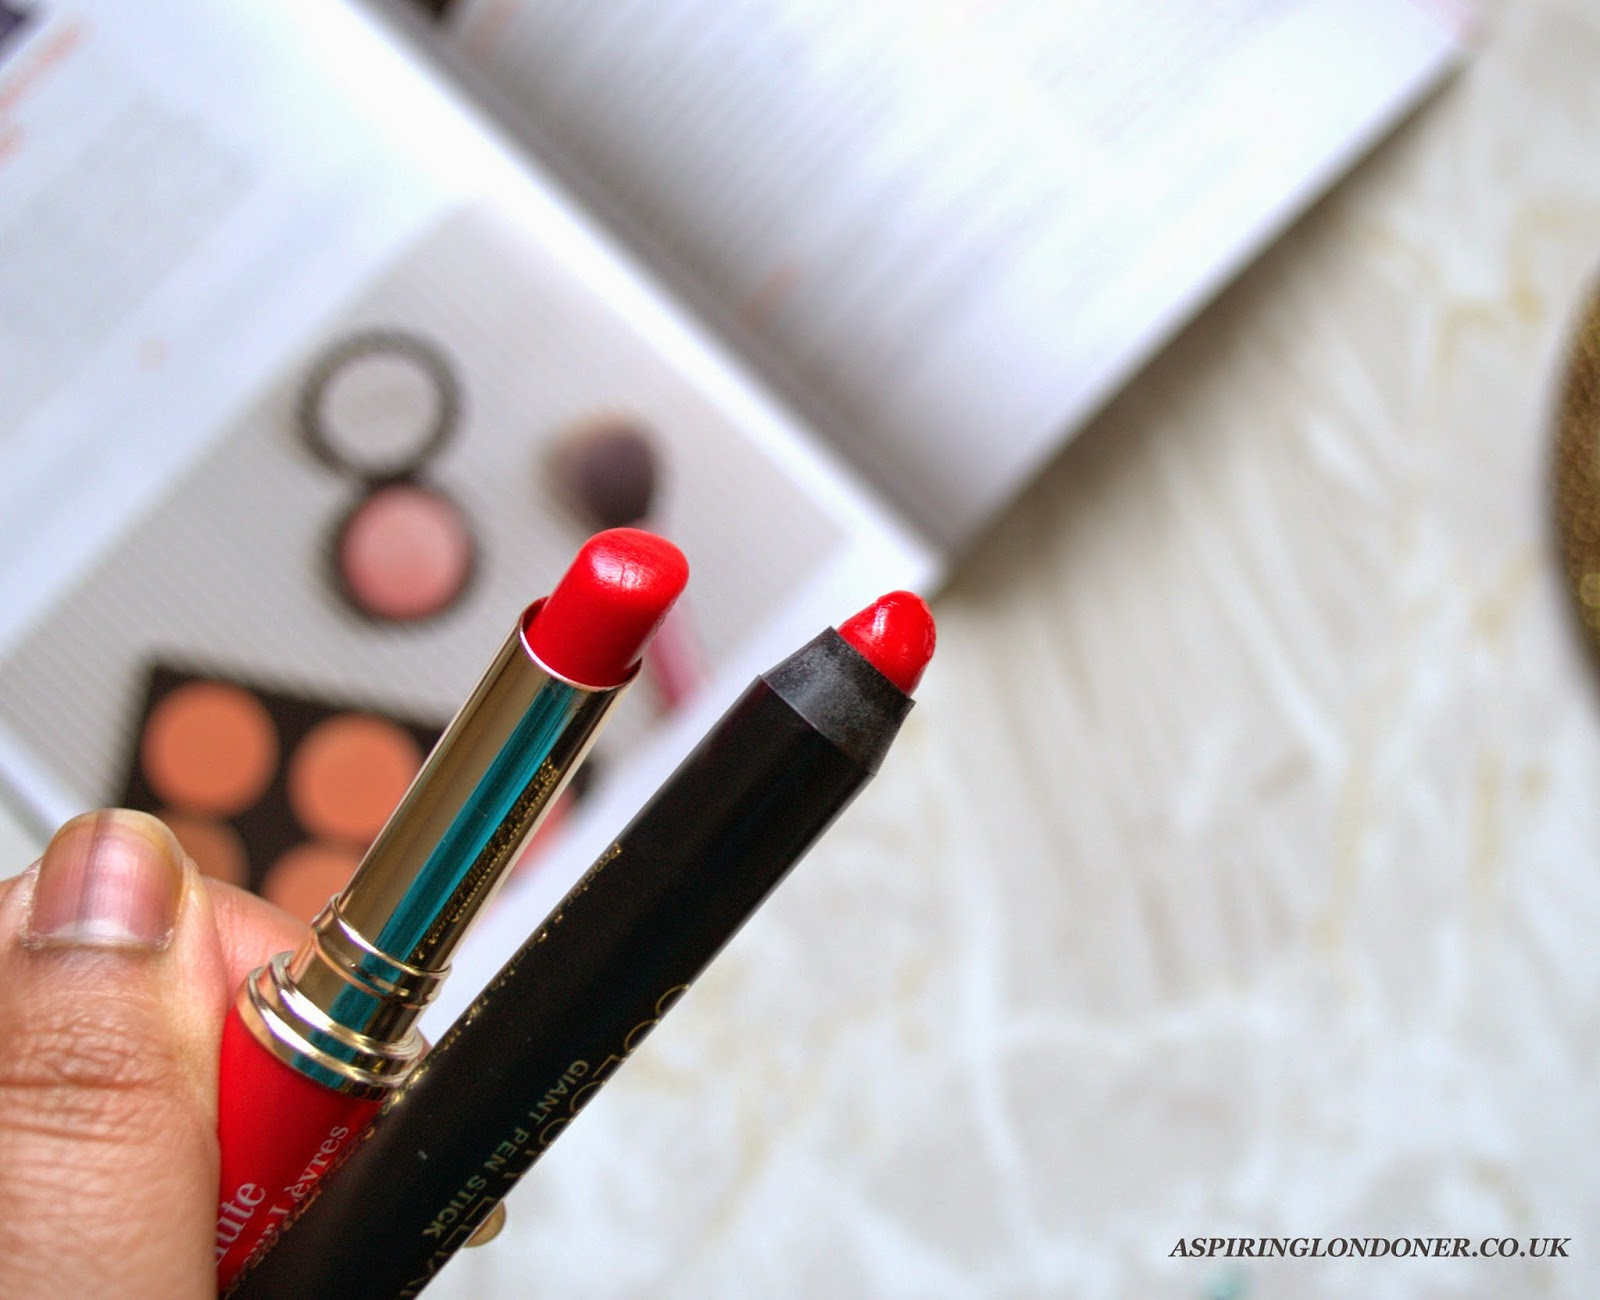 Max Factor Colour Elixir Giant Pen Stick in Designer Blossom Review Swatch - Aspiring Londoner